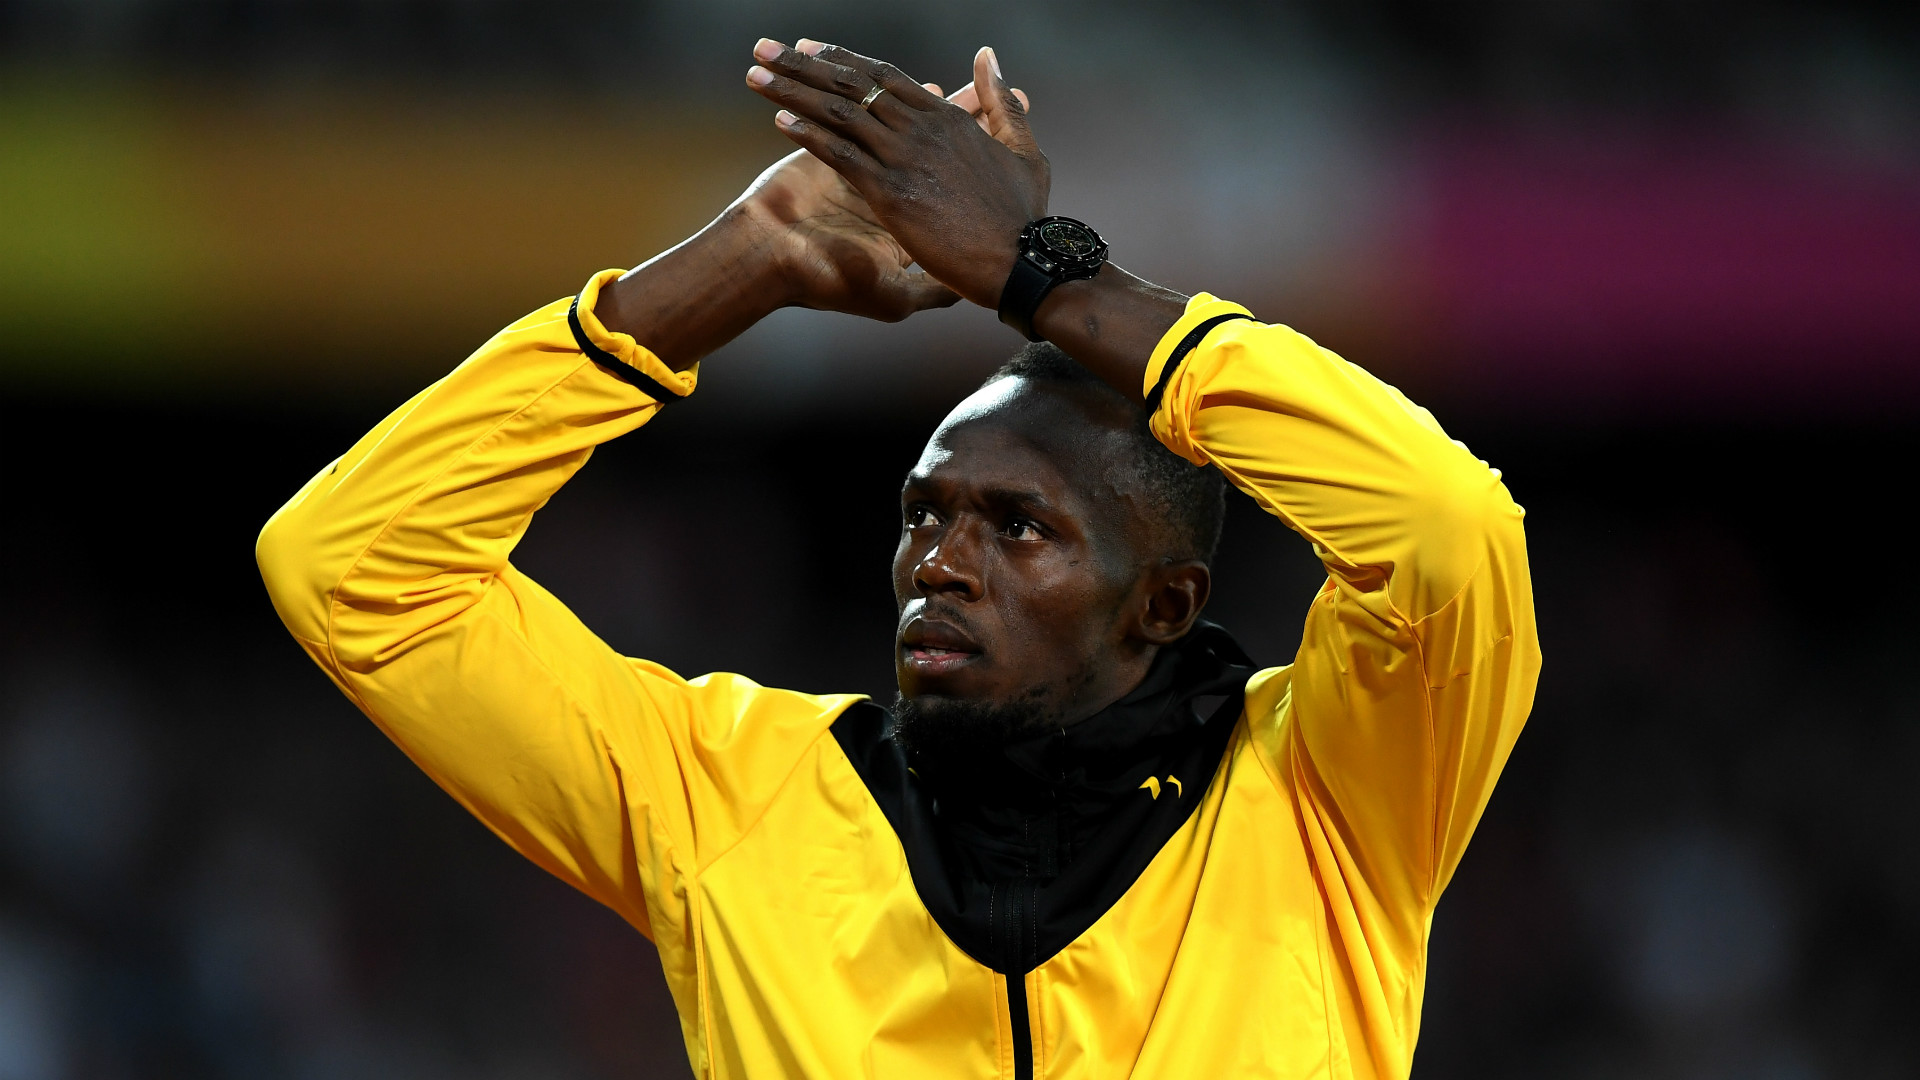 Usain Bolt to make his football debut in UNICEF Soccer Aid match